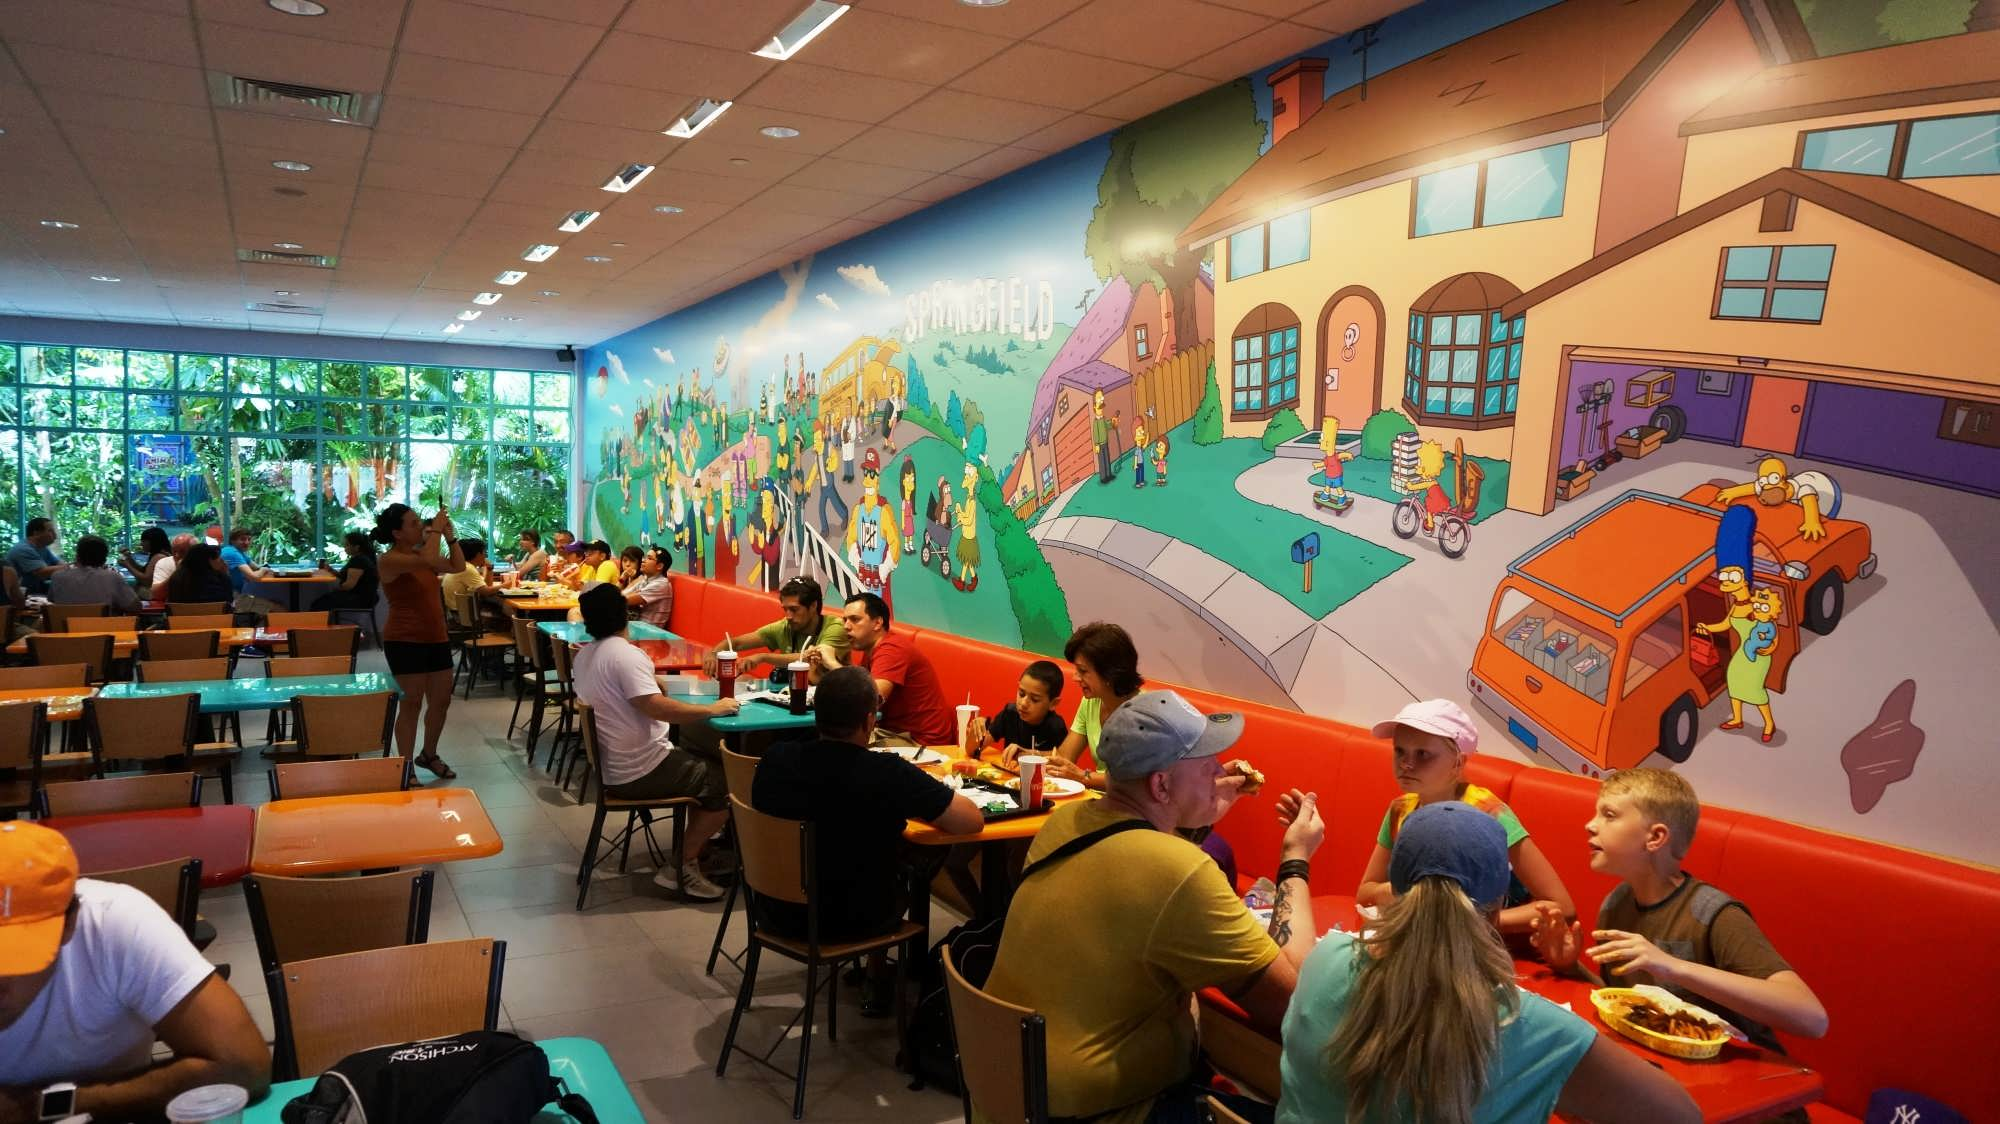 Diners eat at Fast Food Boulevard, with a wall mural featuring characters and locations from The Simpsons